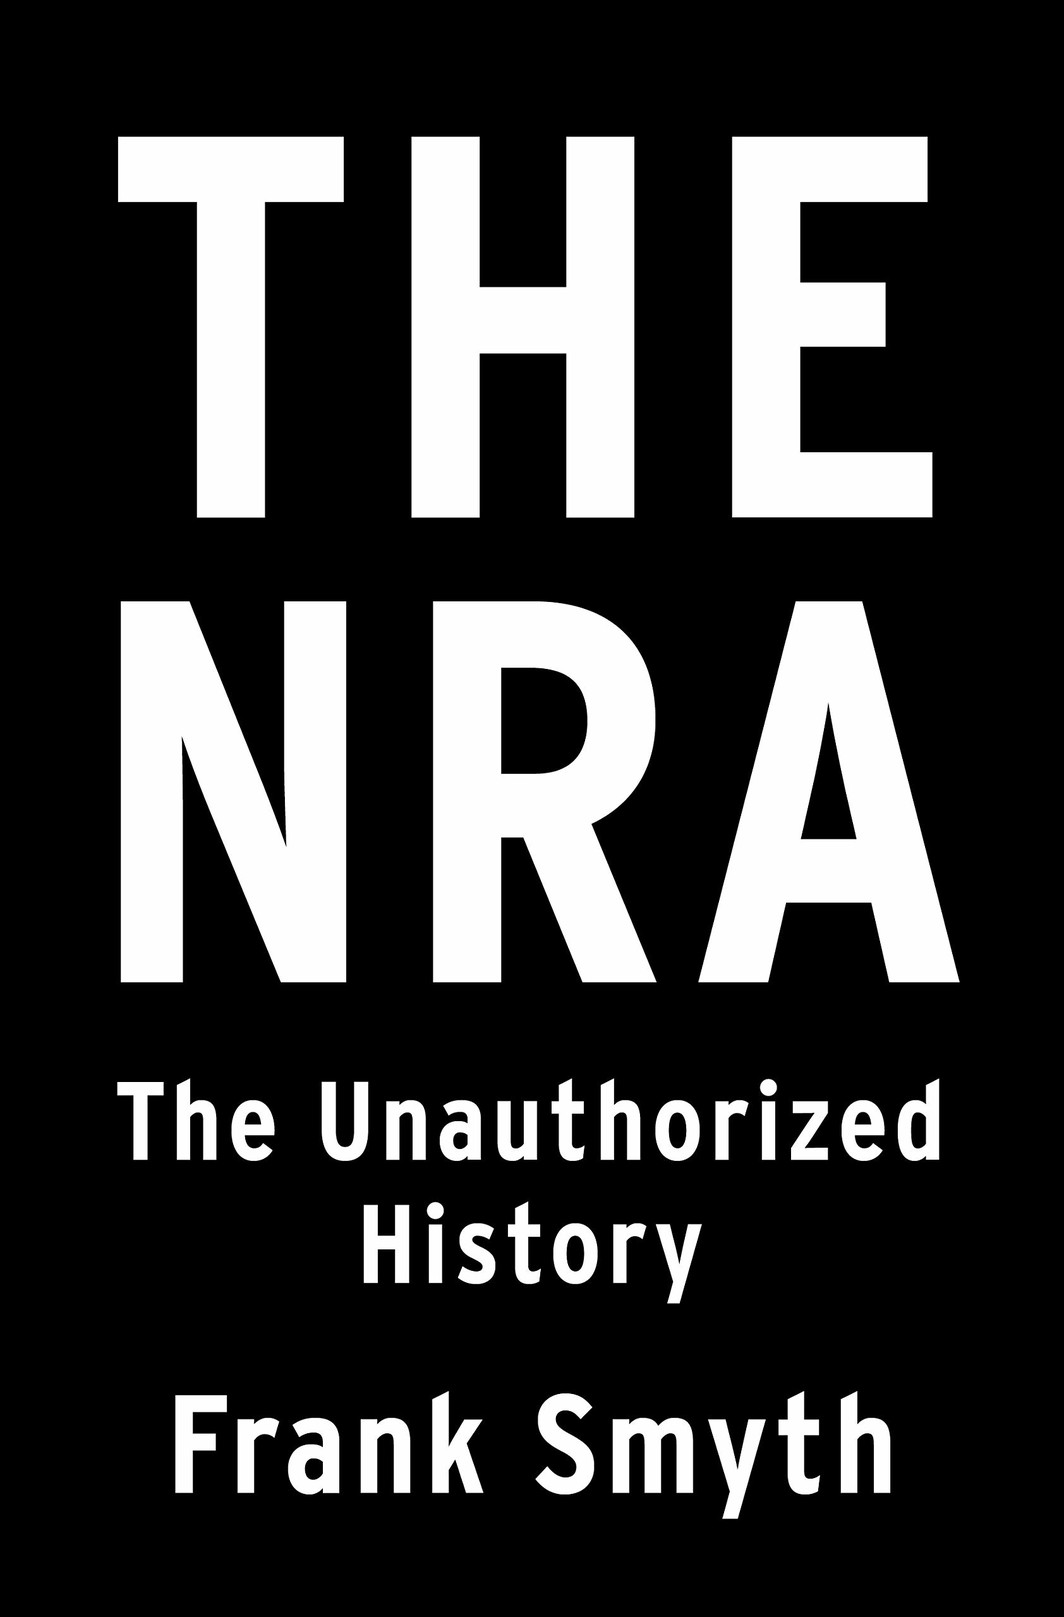 The cover of The NRA: The Unauthorized History